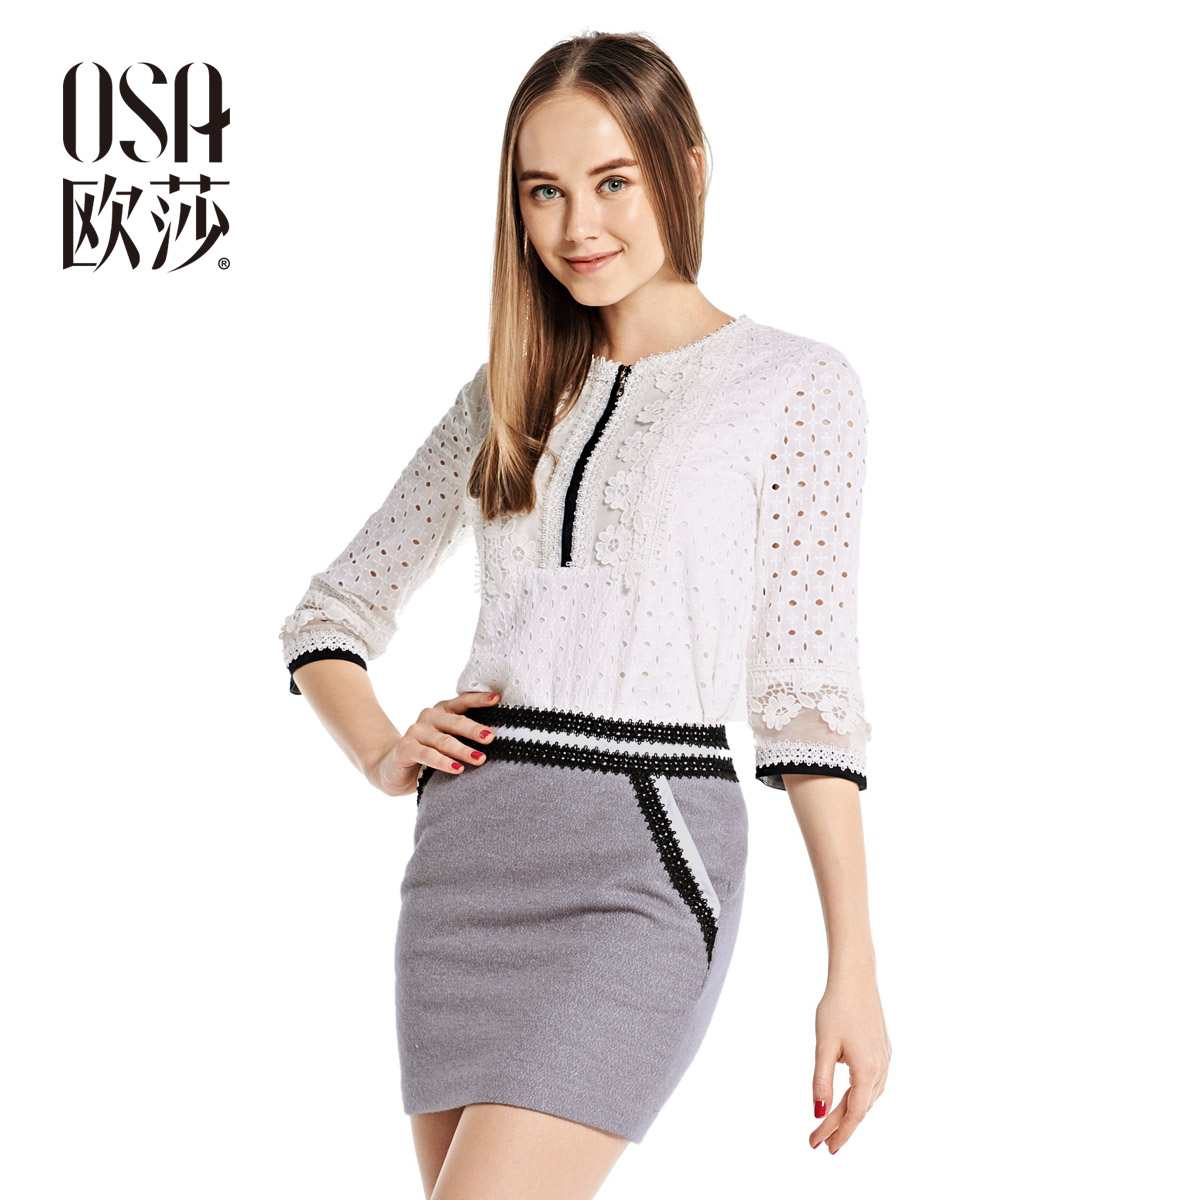 OSA 2014 Womens OL Stylish Autumn Fashion Blouses Embroidery Hollow Out Lace Splicing Tops Shirts Blusas Cotton SC415007(China (Mainland))